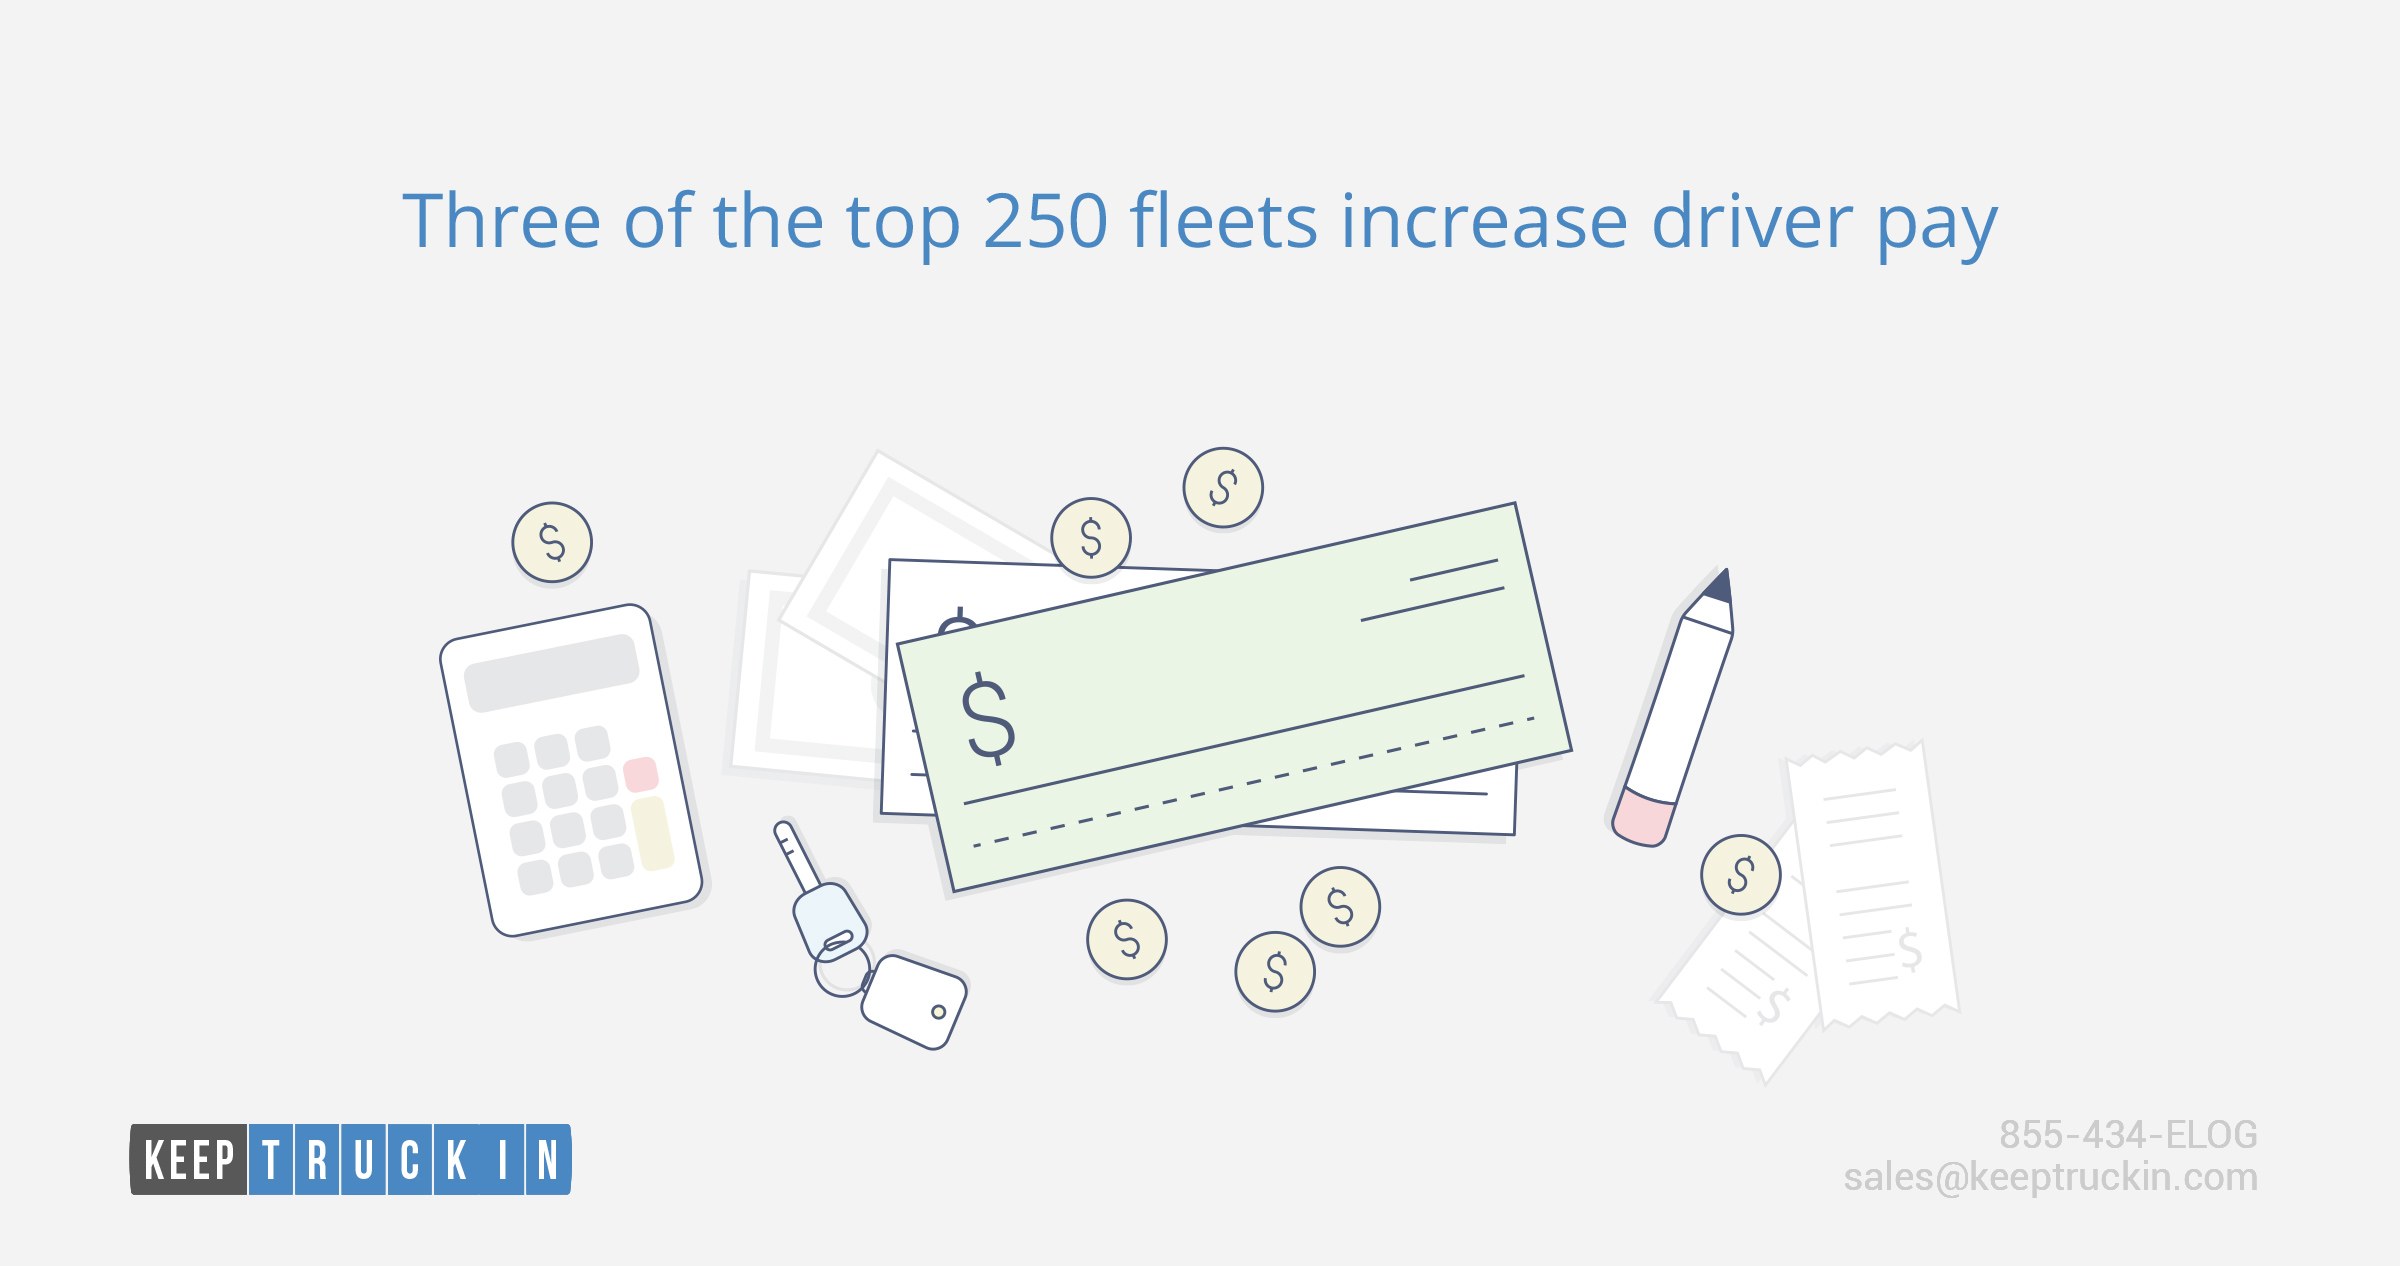 Three of the top 250 fleets increase driver pay